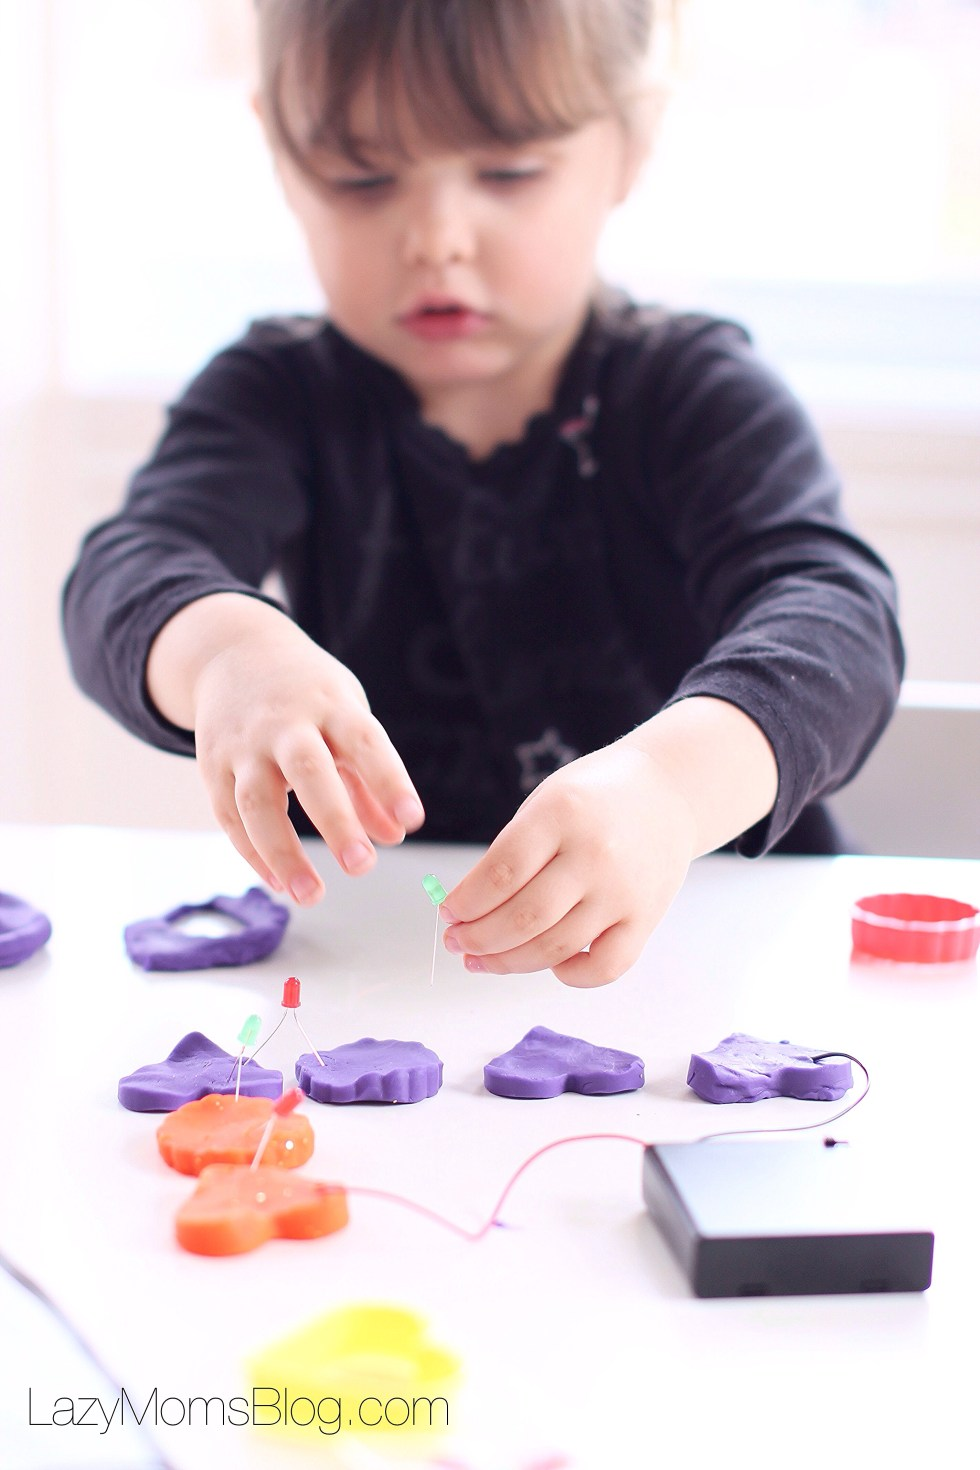 This lit lets you experiment with light and sound while playing play dough! Great educative toy!